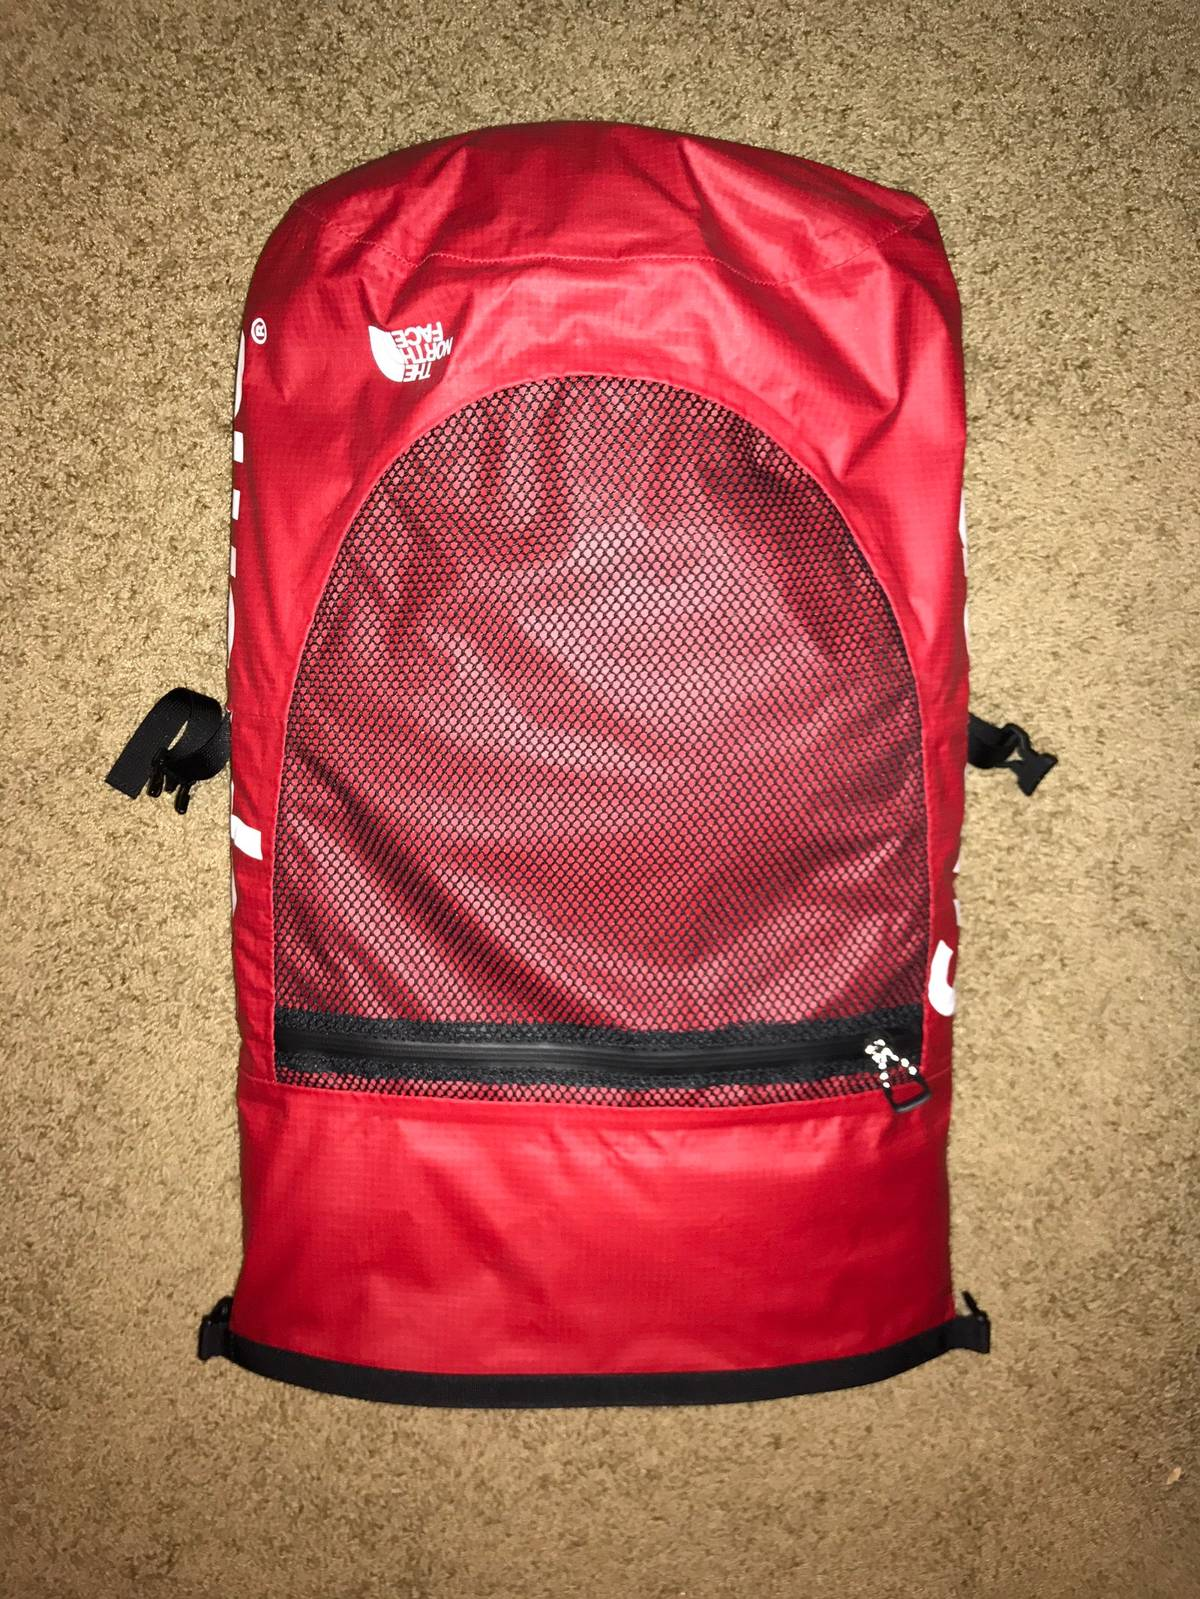 Supreme Supreme Ss17 Backpack Red | Grailed